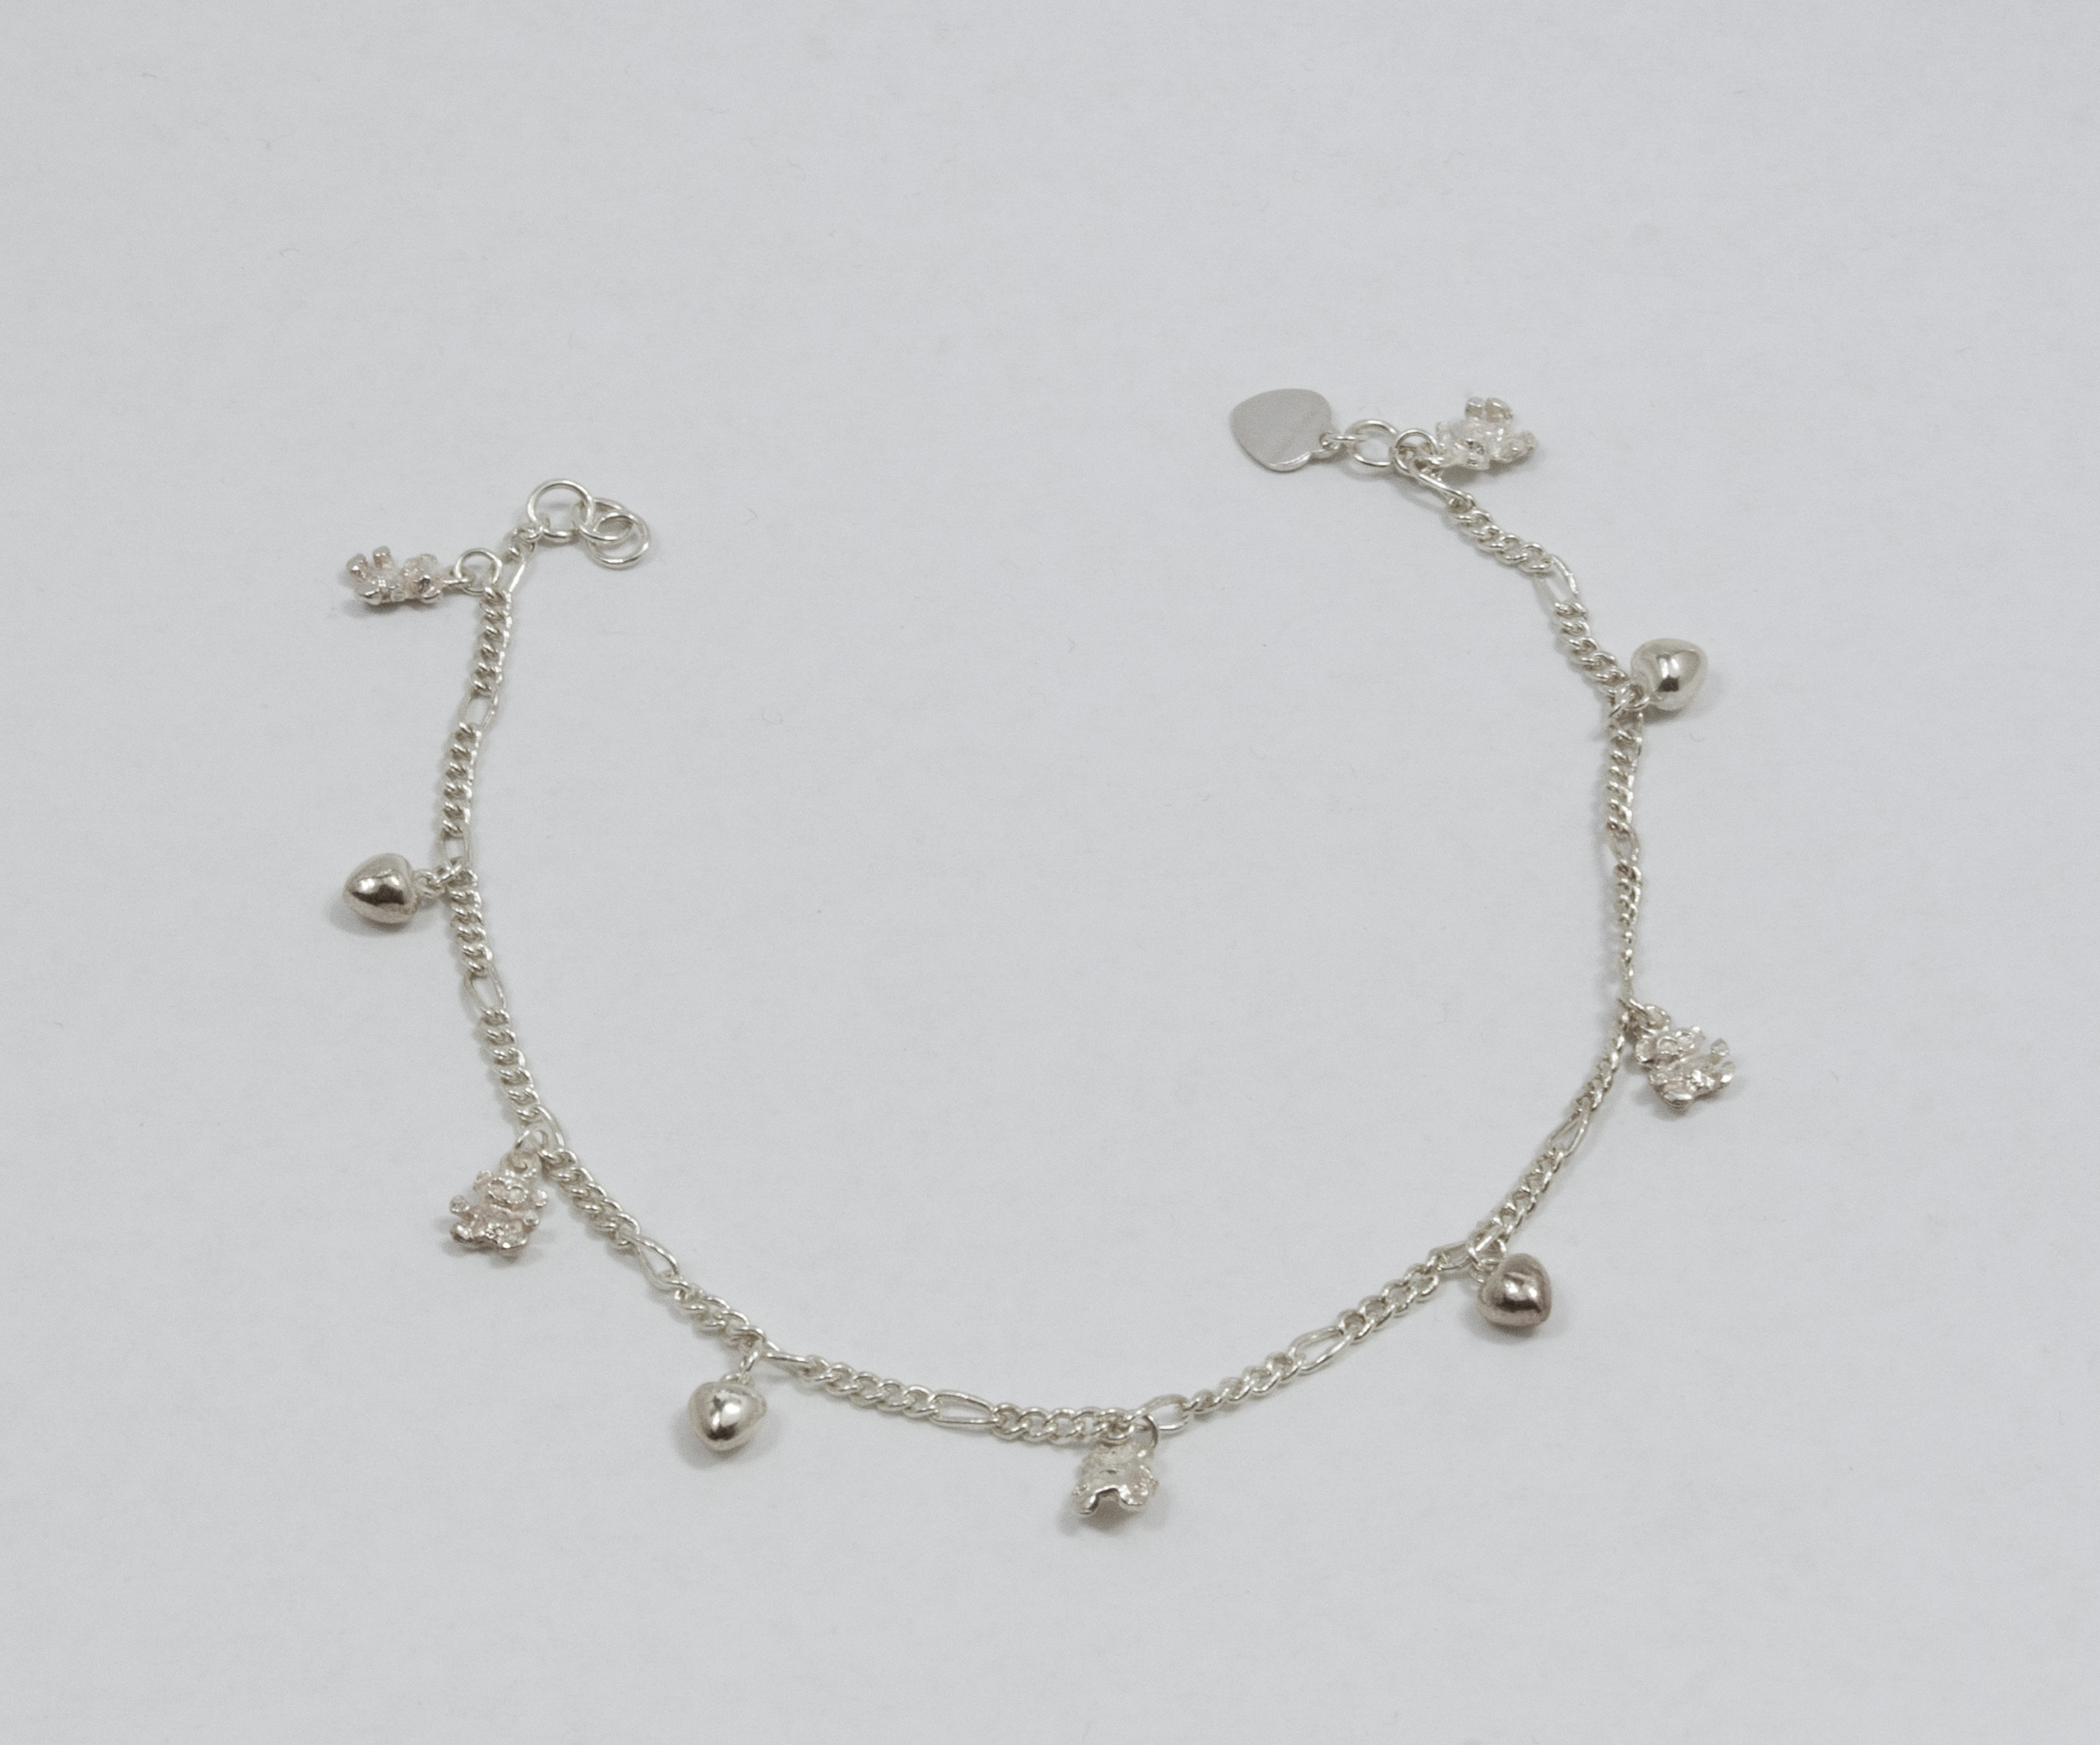 Silver anklets for Charm sterling ... jmaxnzm